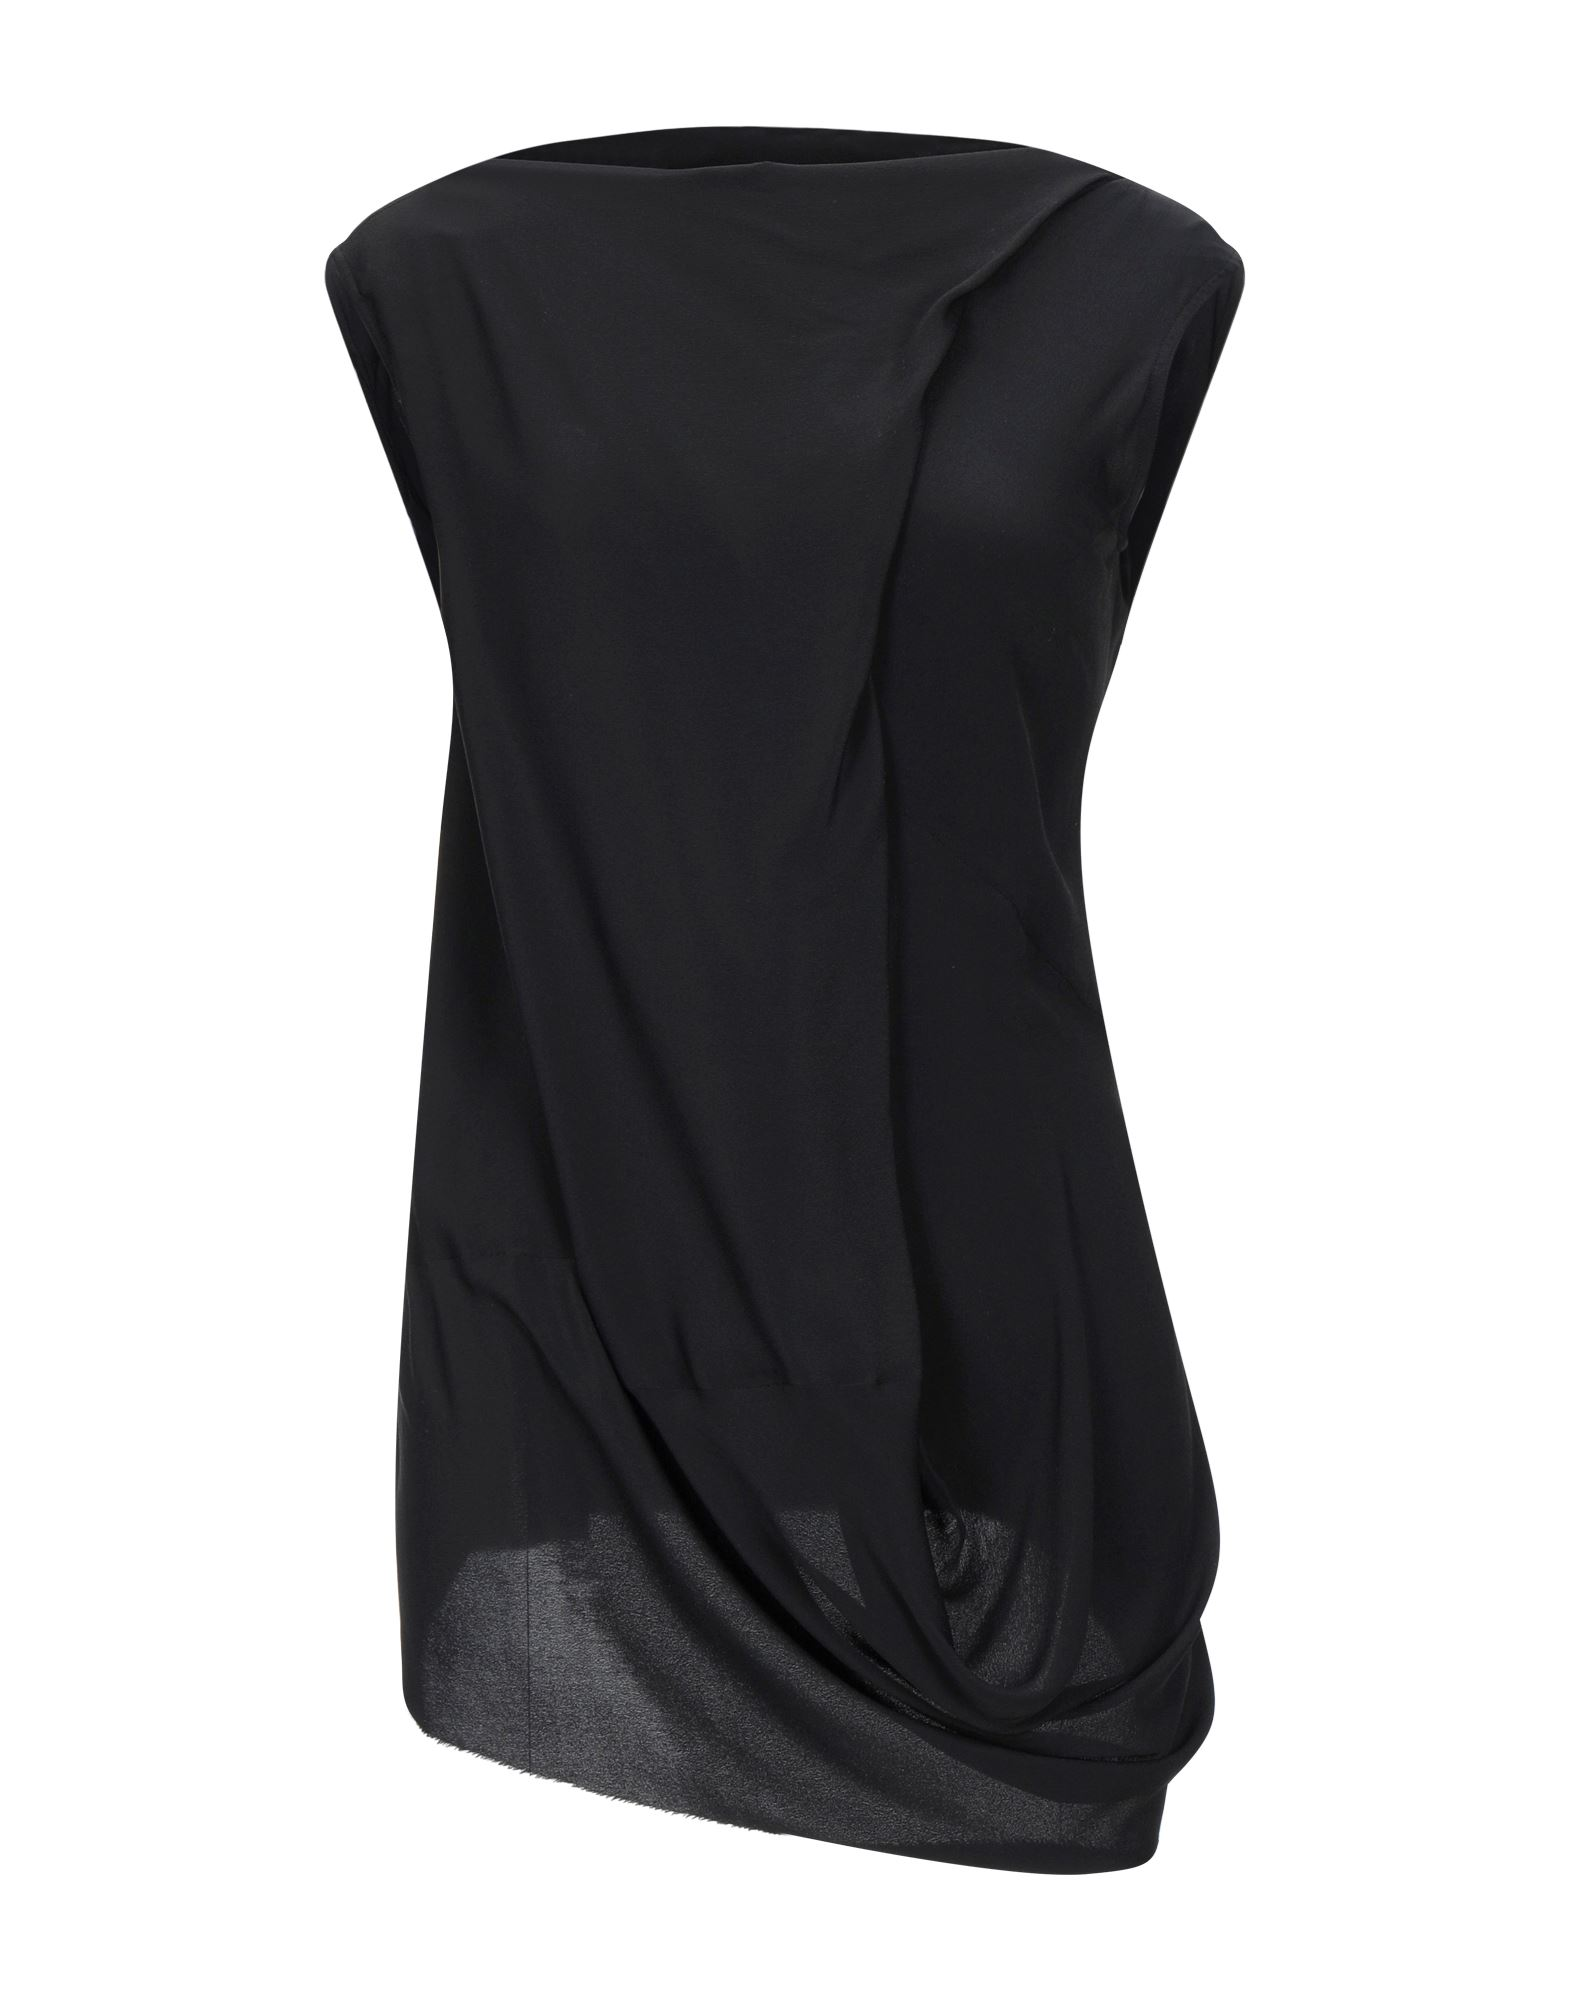 RICK OWENS Tops. crepe, laces, basic solid color, collar with draped neckline, sleeveless, no pockets, unlined, small sized. 62% Acetate, 38% Silk